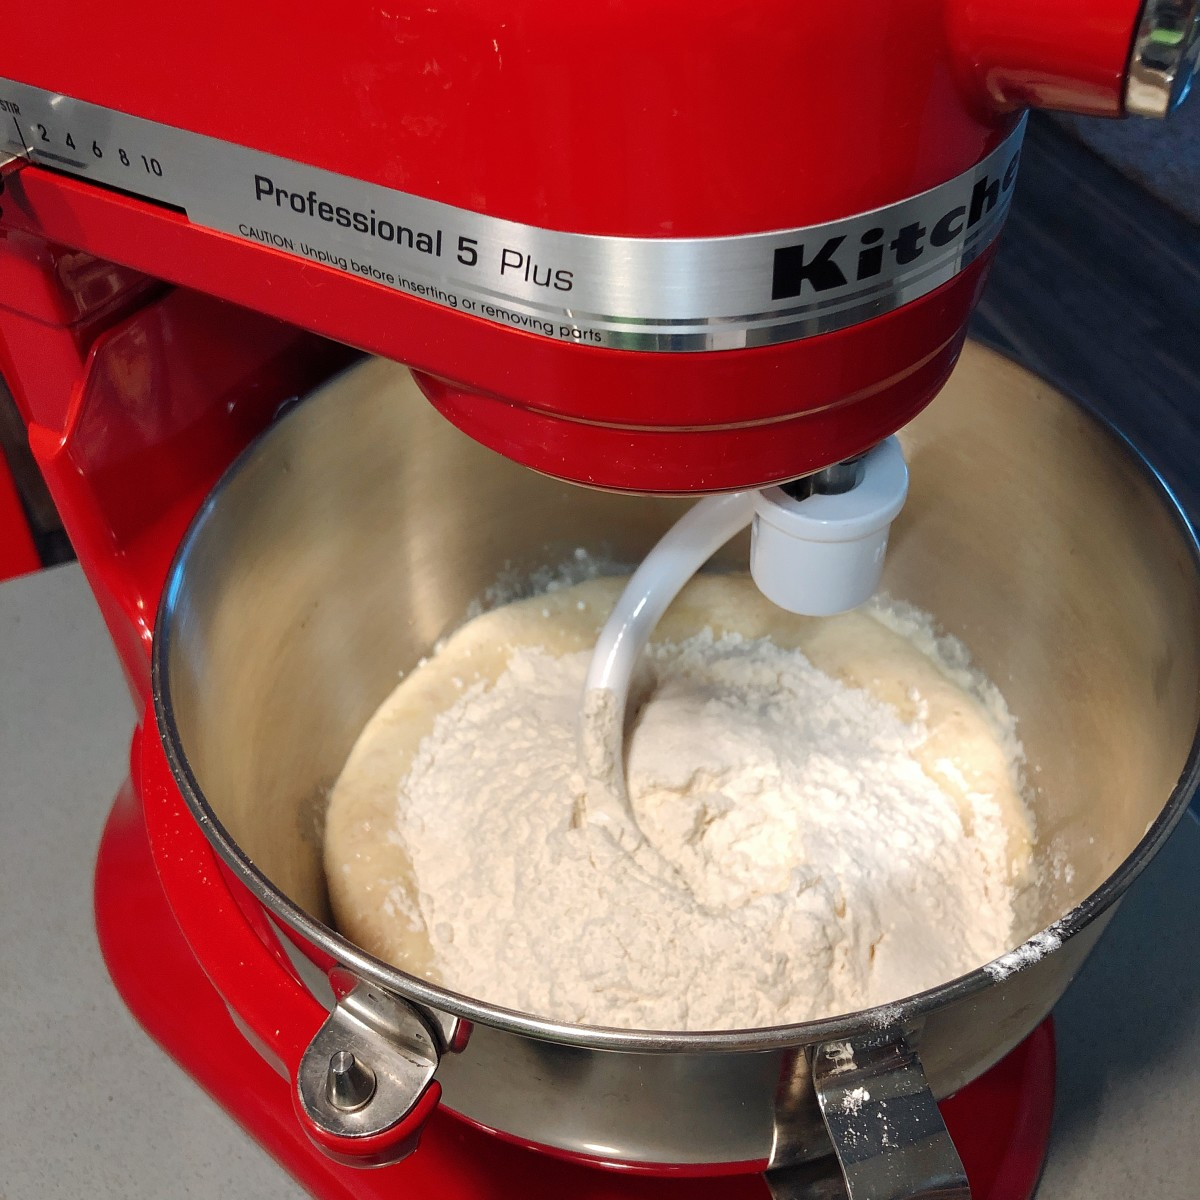 Mix the dry ingredients into the yeast mixture.